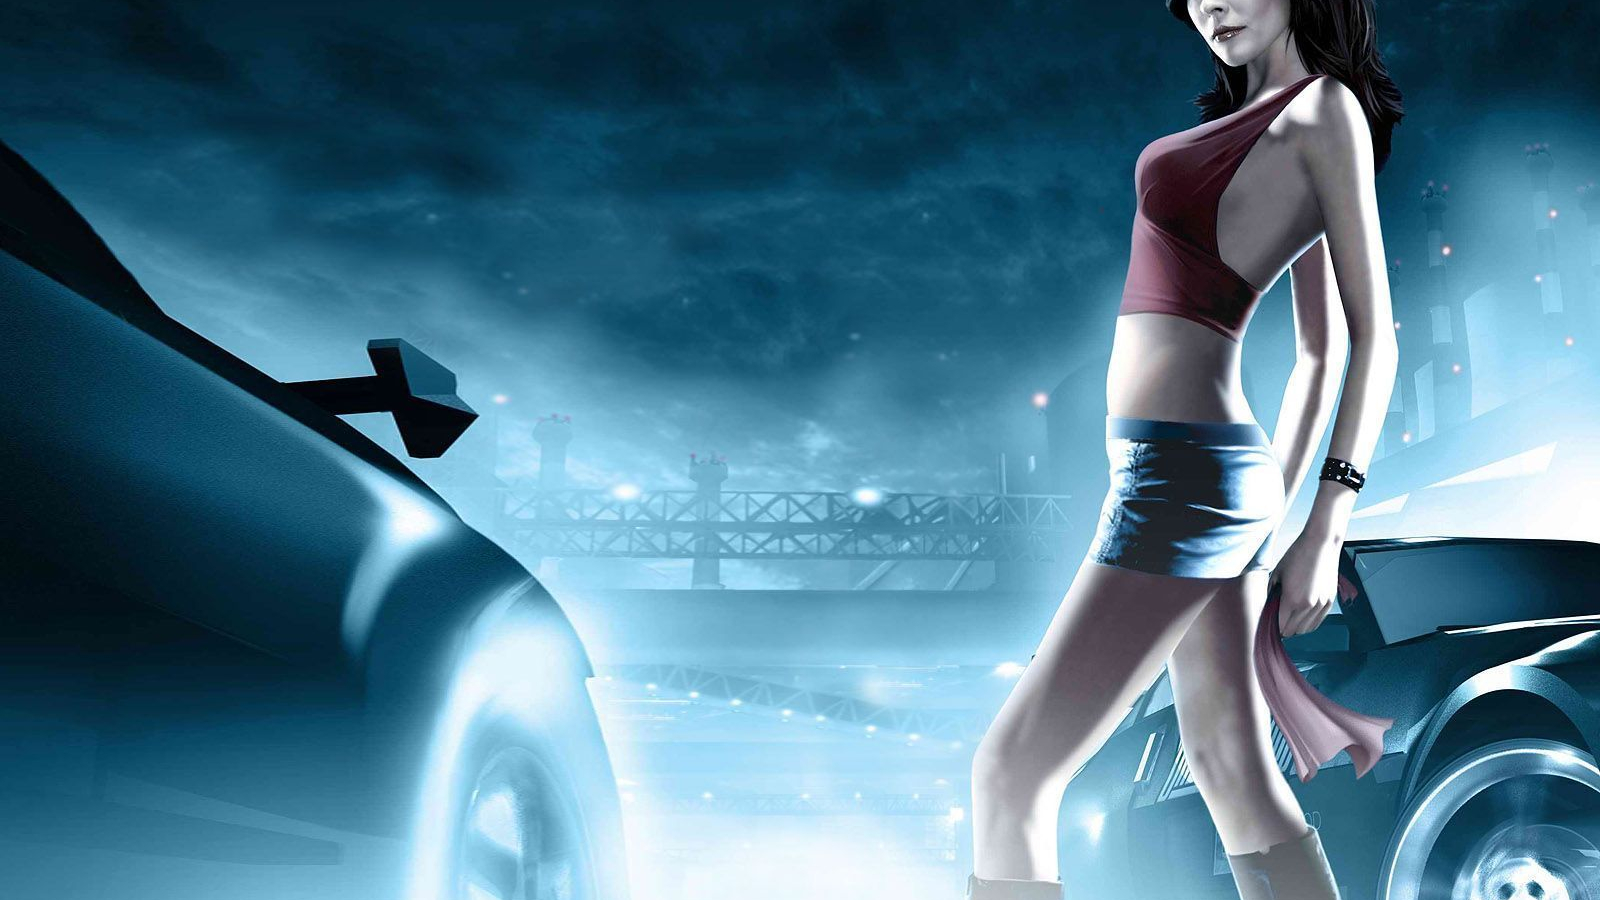 Free Download Need For Speed Underground 2 Wallpaper Good